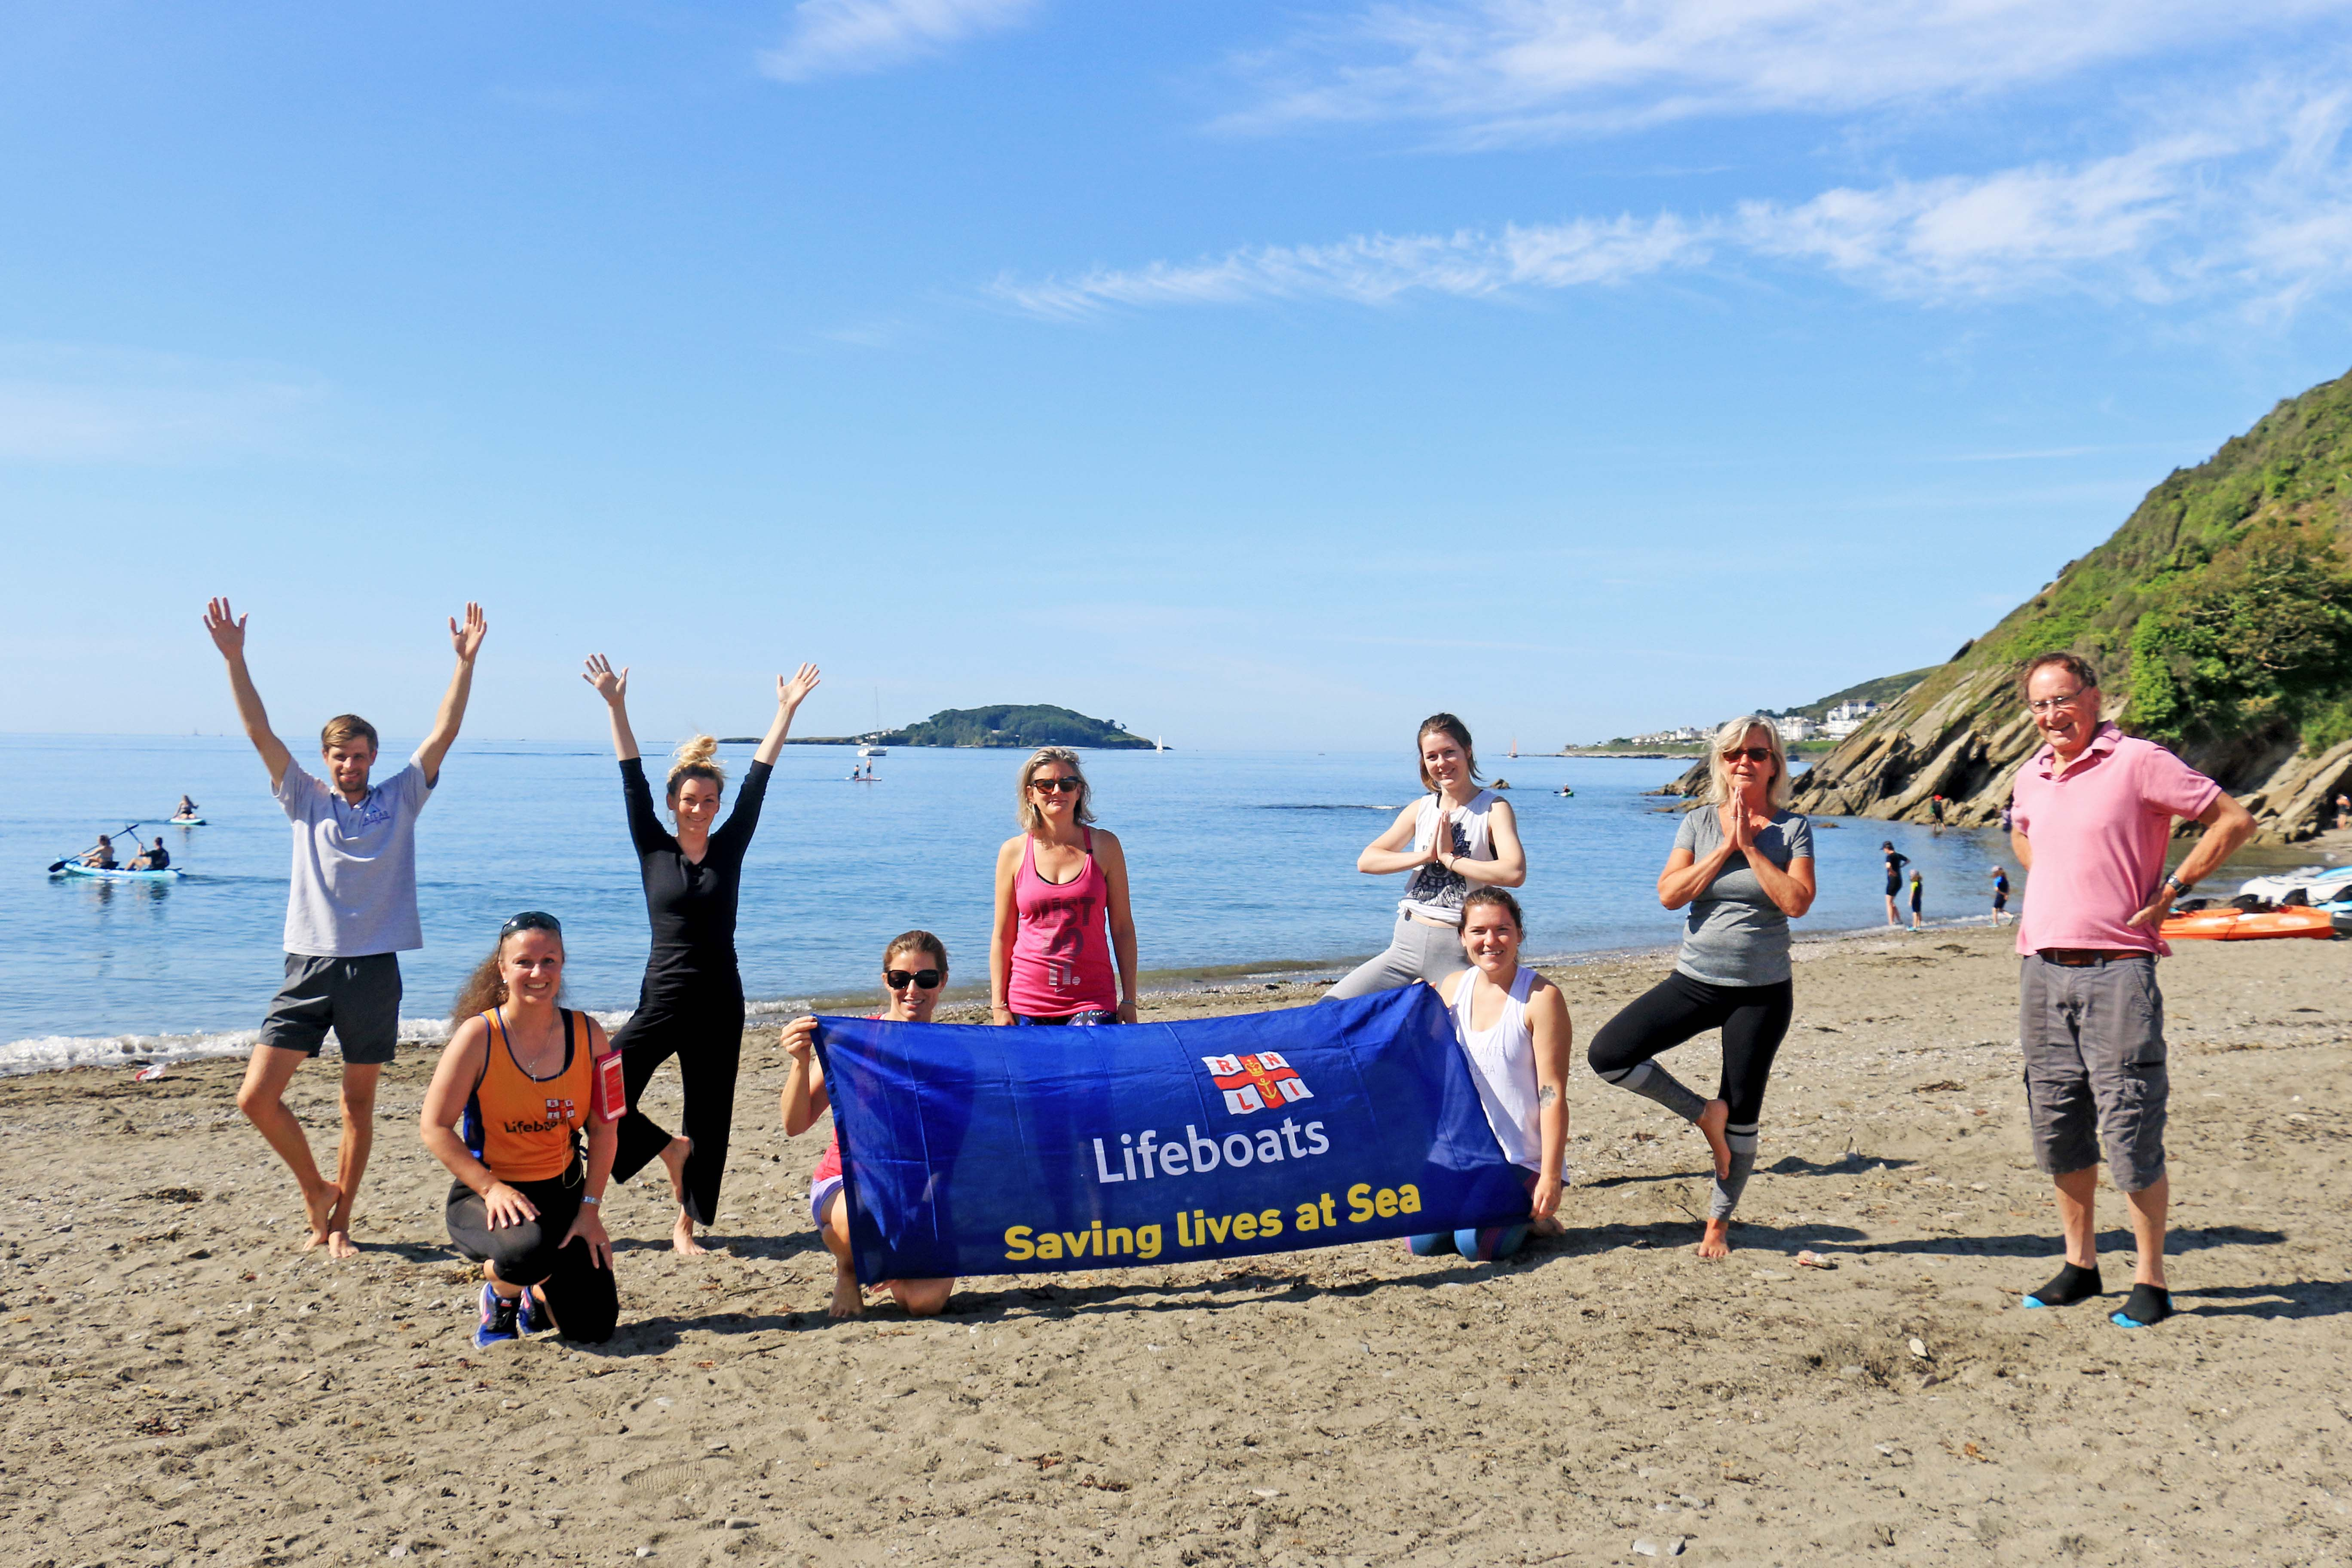 Yoga on the beach class at Millendreath, with Christina Hoppenbrouers and Looe RNLI volunteer crew member Victoria Thomas